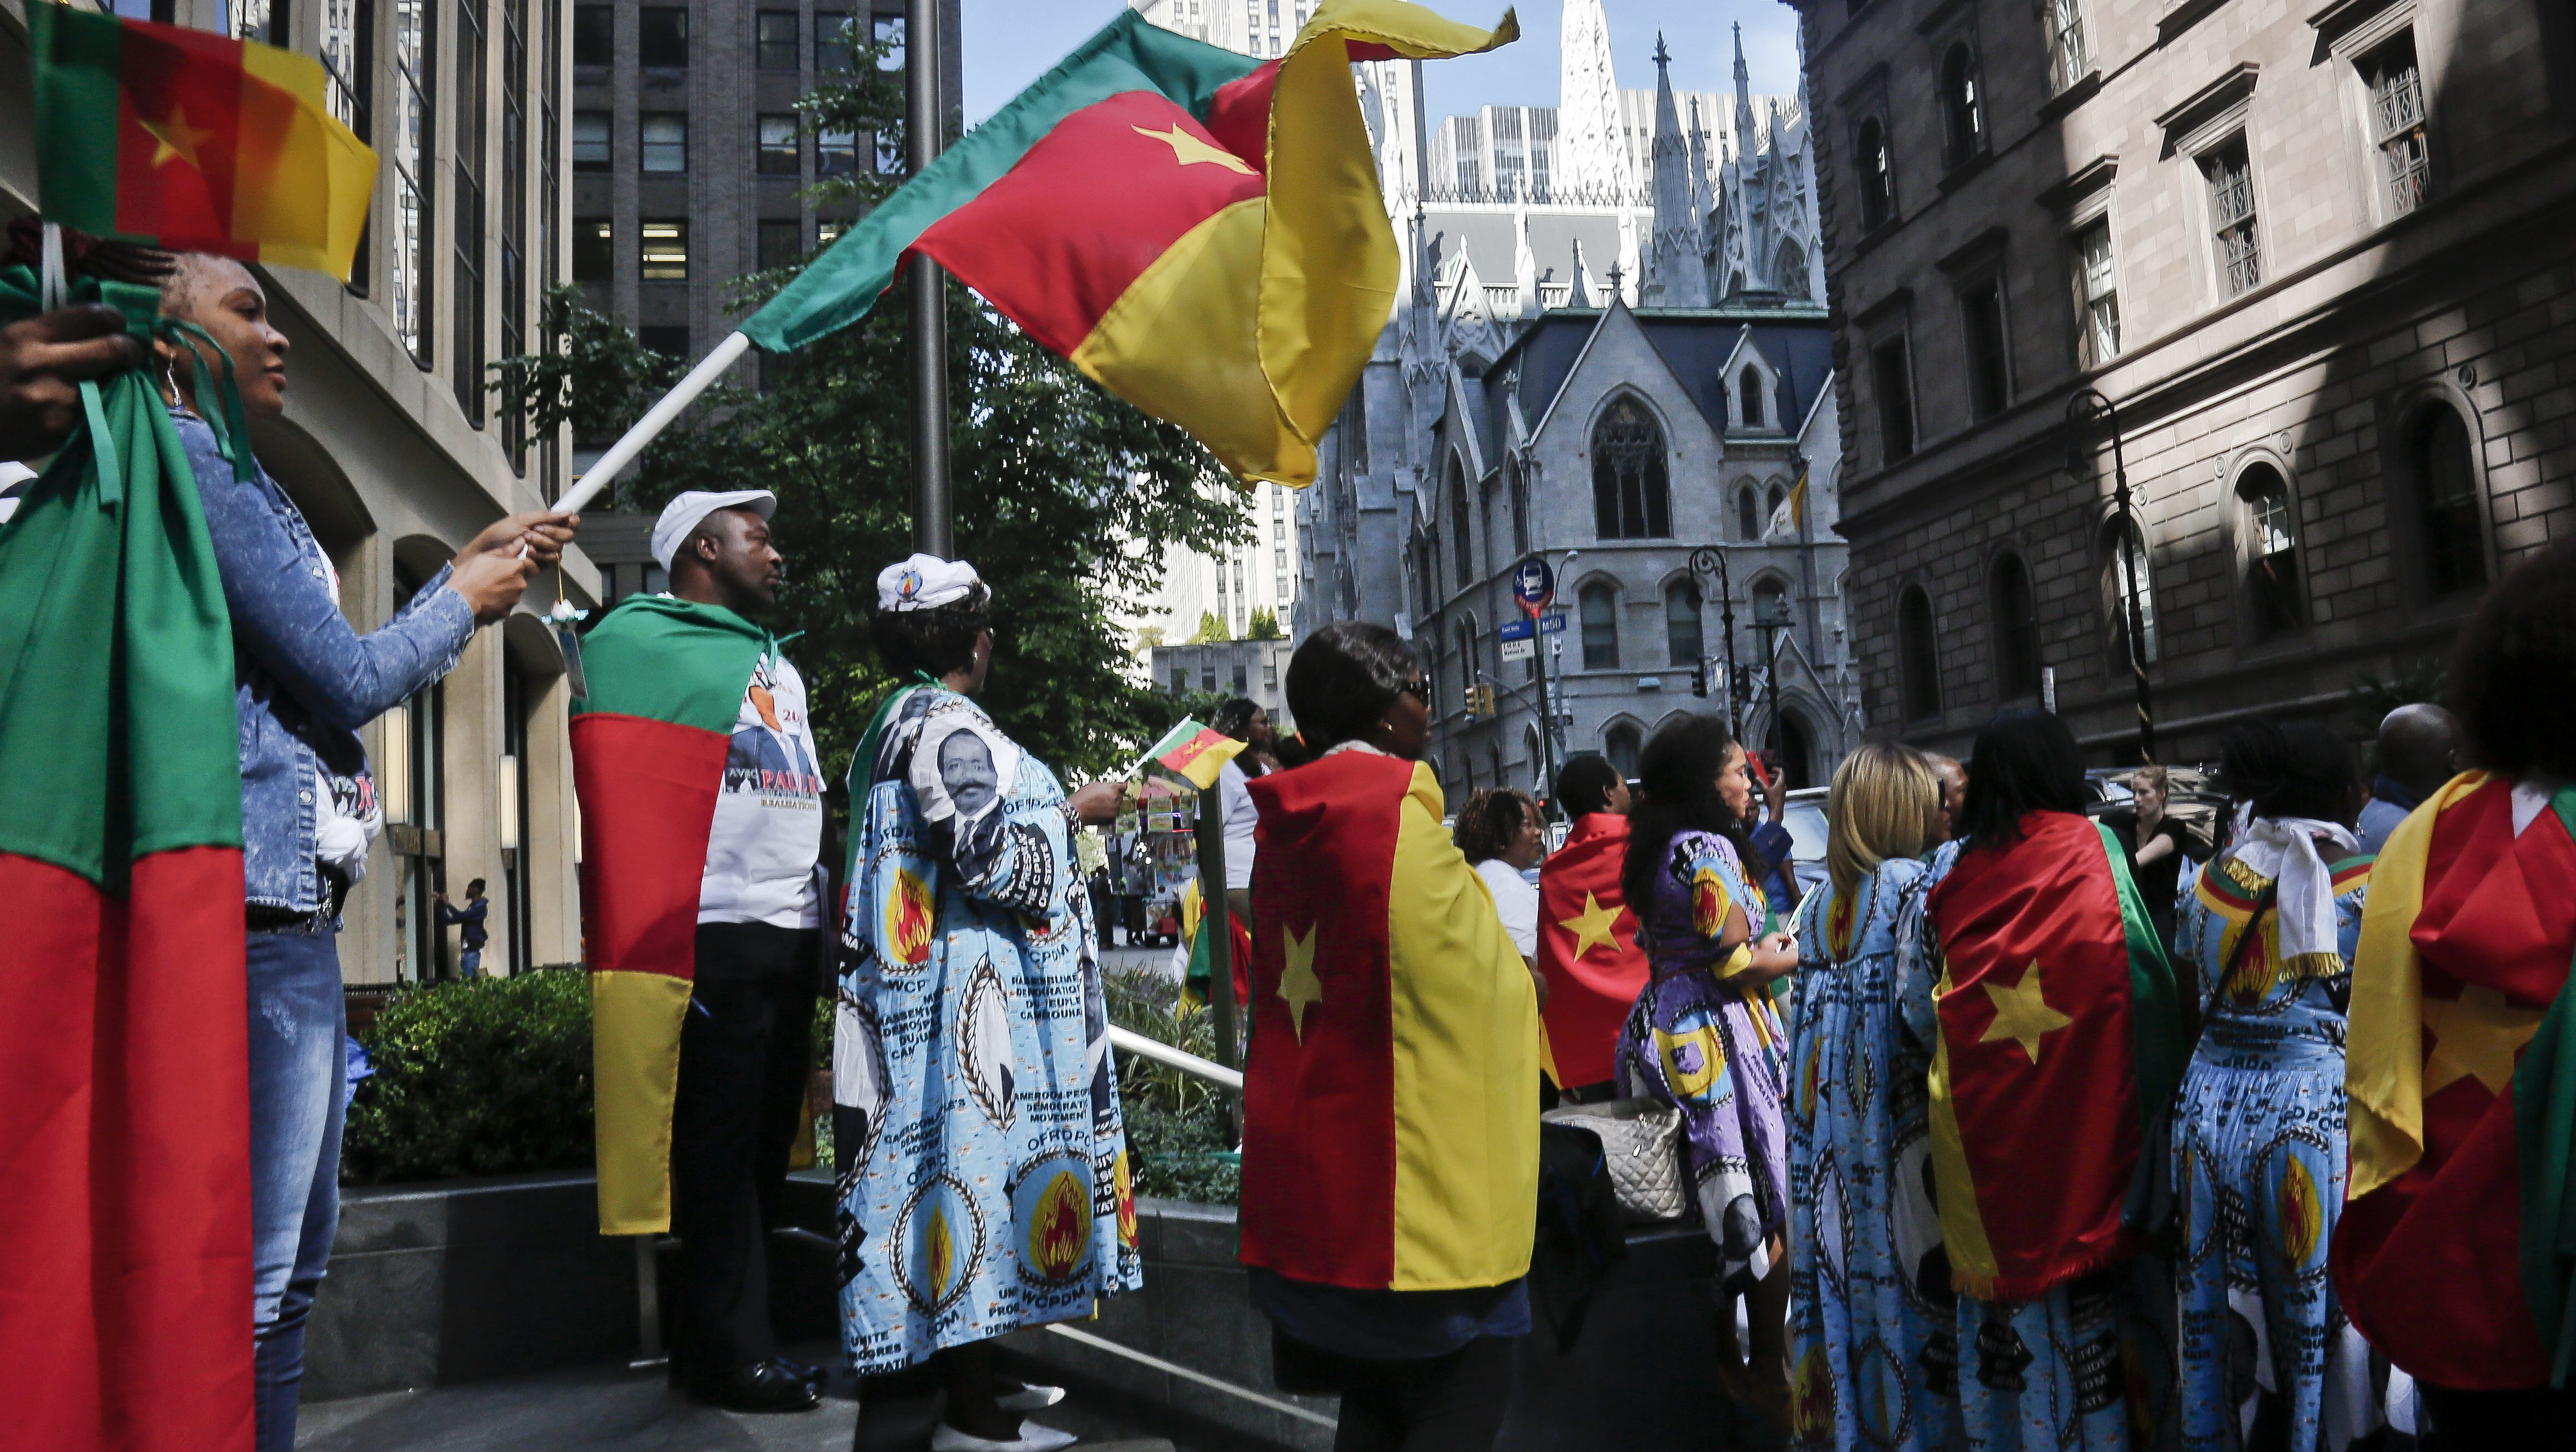 Cameroon supporters of president Biya in New York